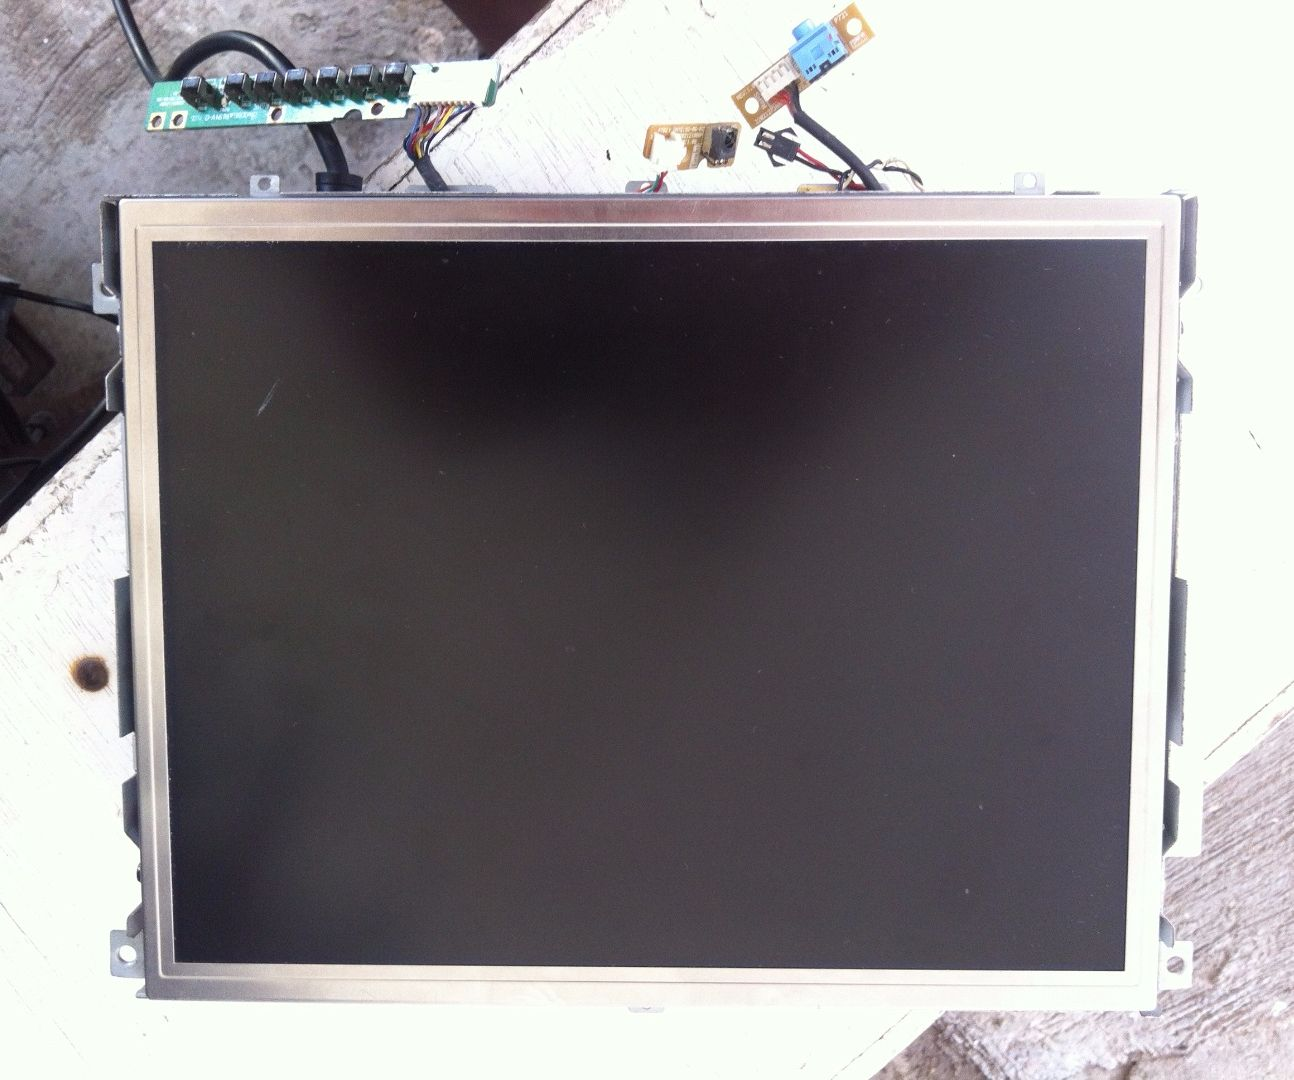 hight resolution of lcd tv backlight repair from ccfl to led